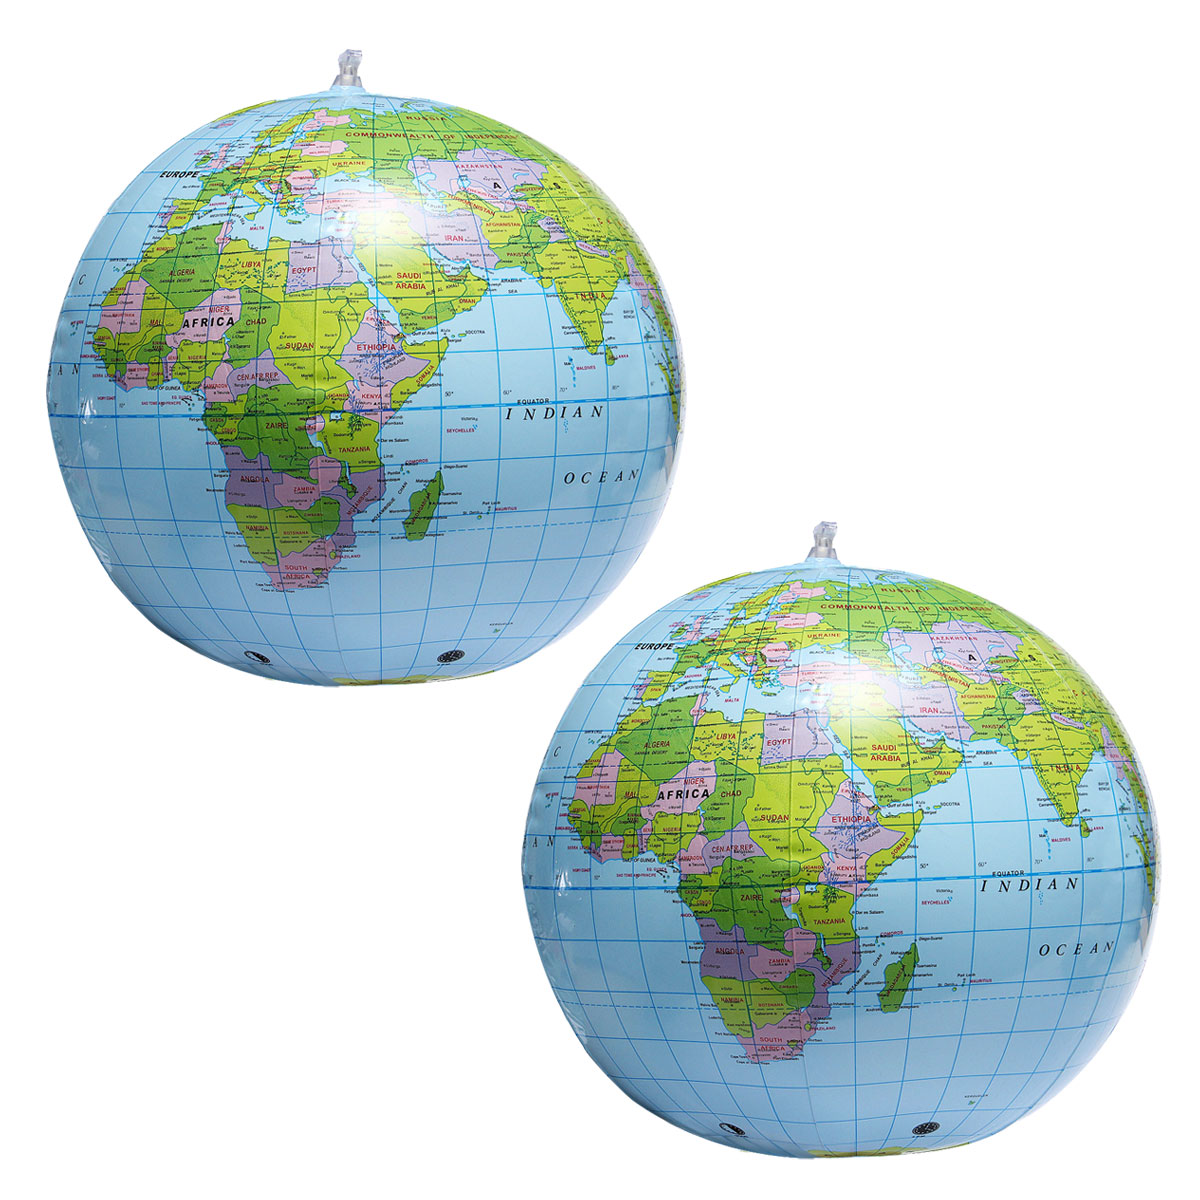 38cm Inflatable World Globe Earth Teaching Geography Map Beach Ball Kids Toy Antiques